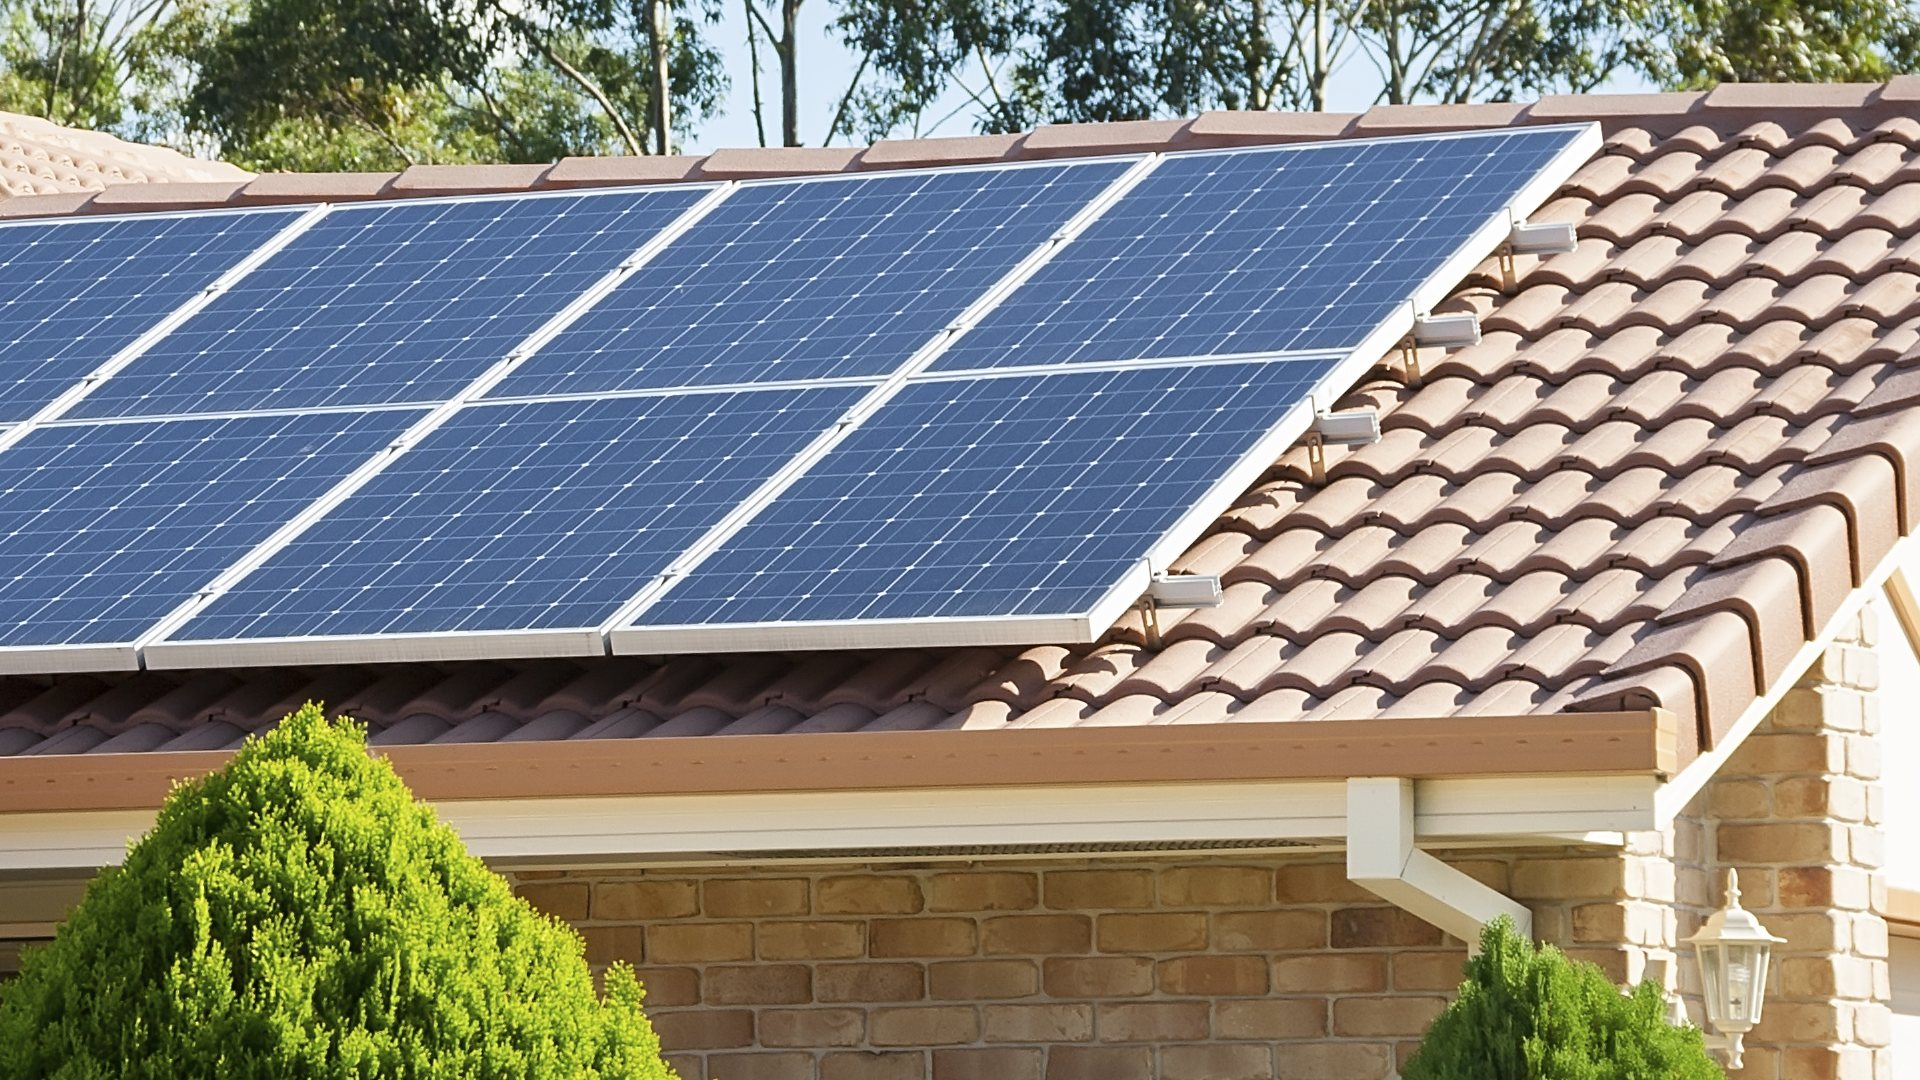 How does a self-consumption photovoltaic solar kit work?